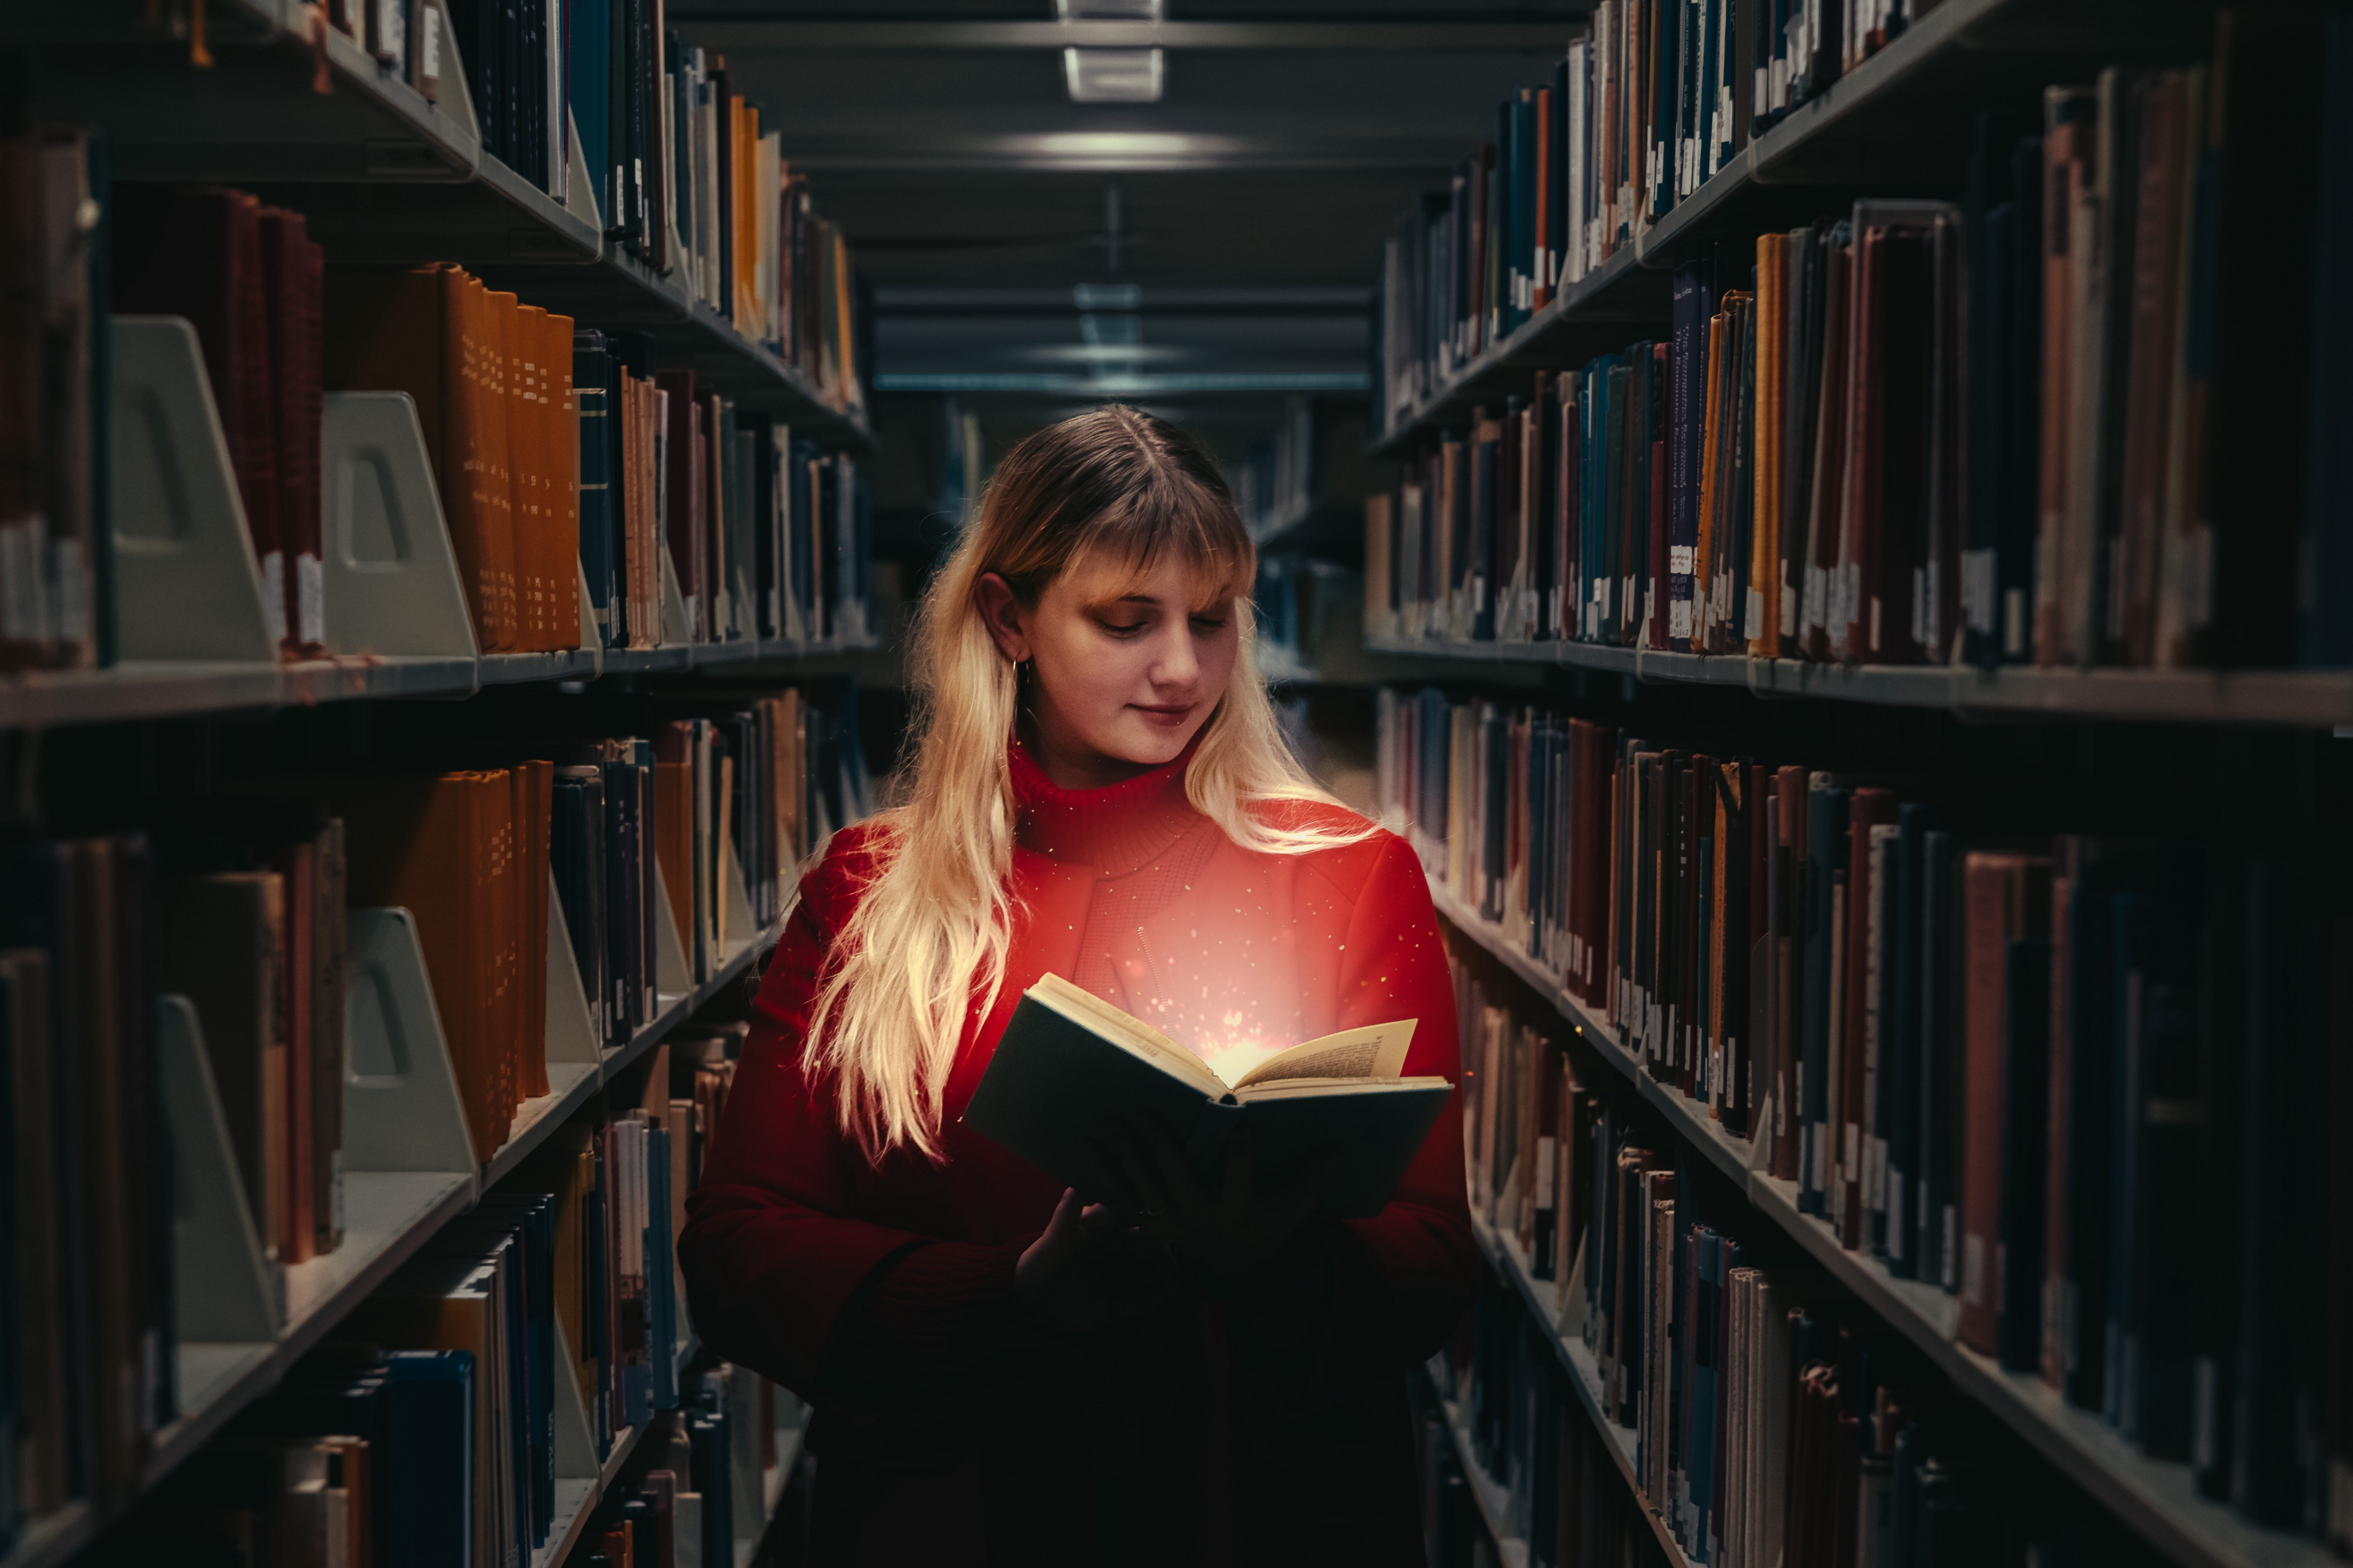 A woman holding a book, wearing a red turtleneck standing between two bookcases in a dark library. Light emanates from book.